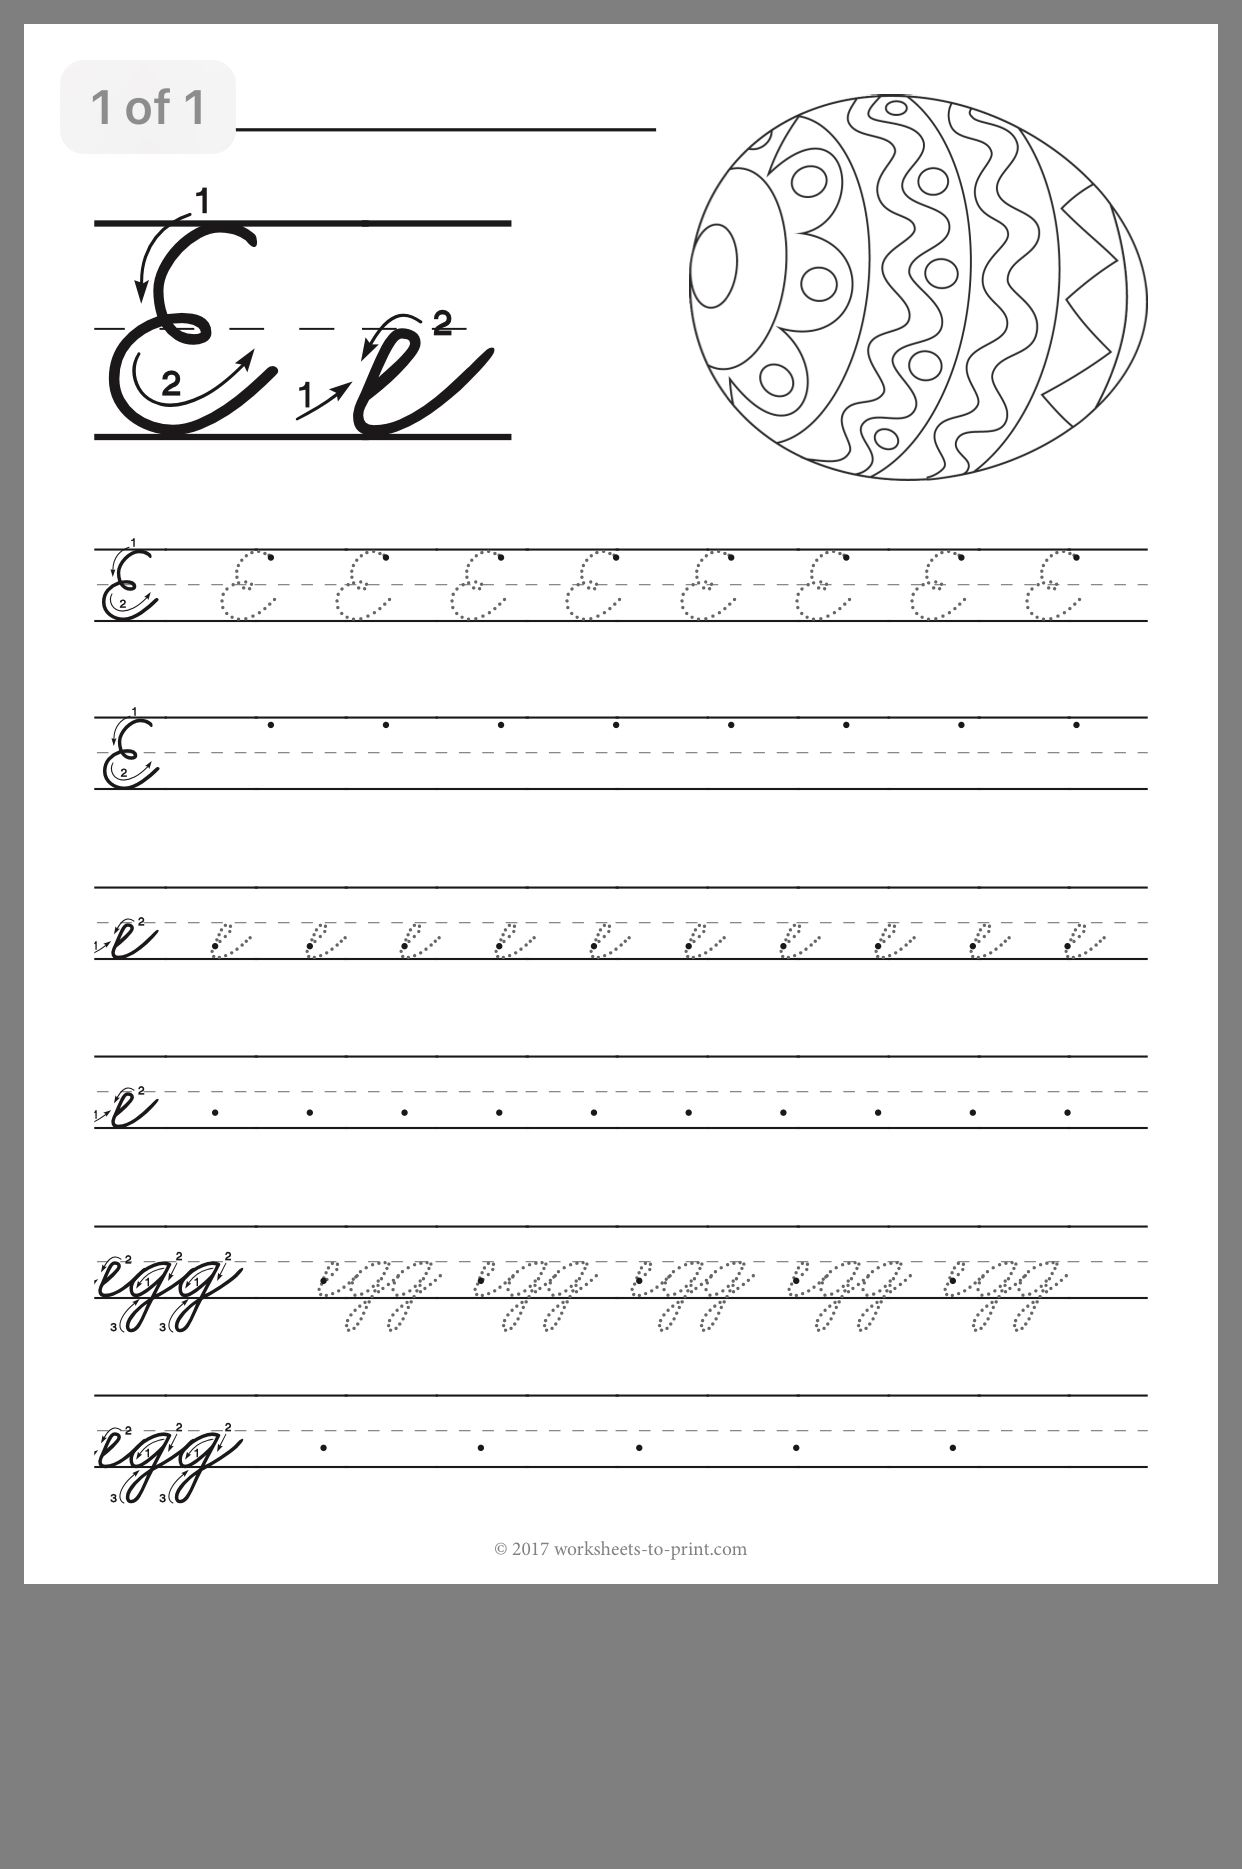 Pin By Justin James Jatico On Cursive Handwriting Practice